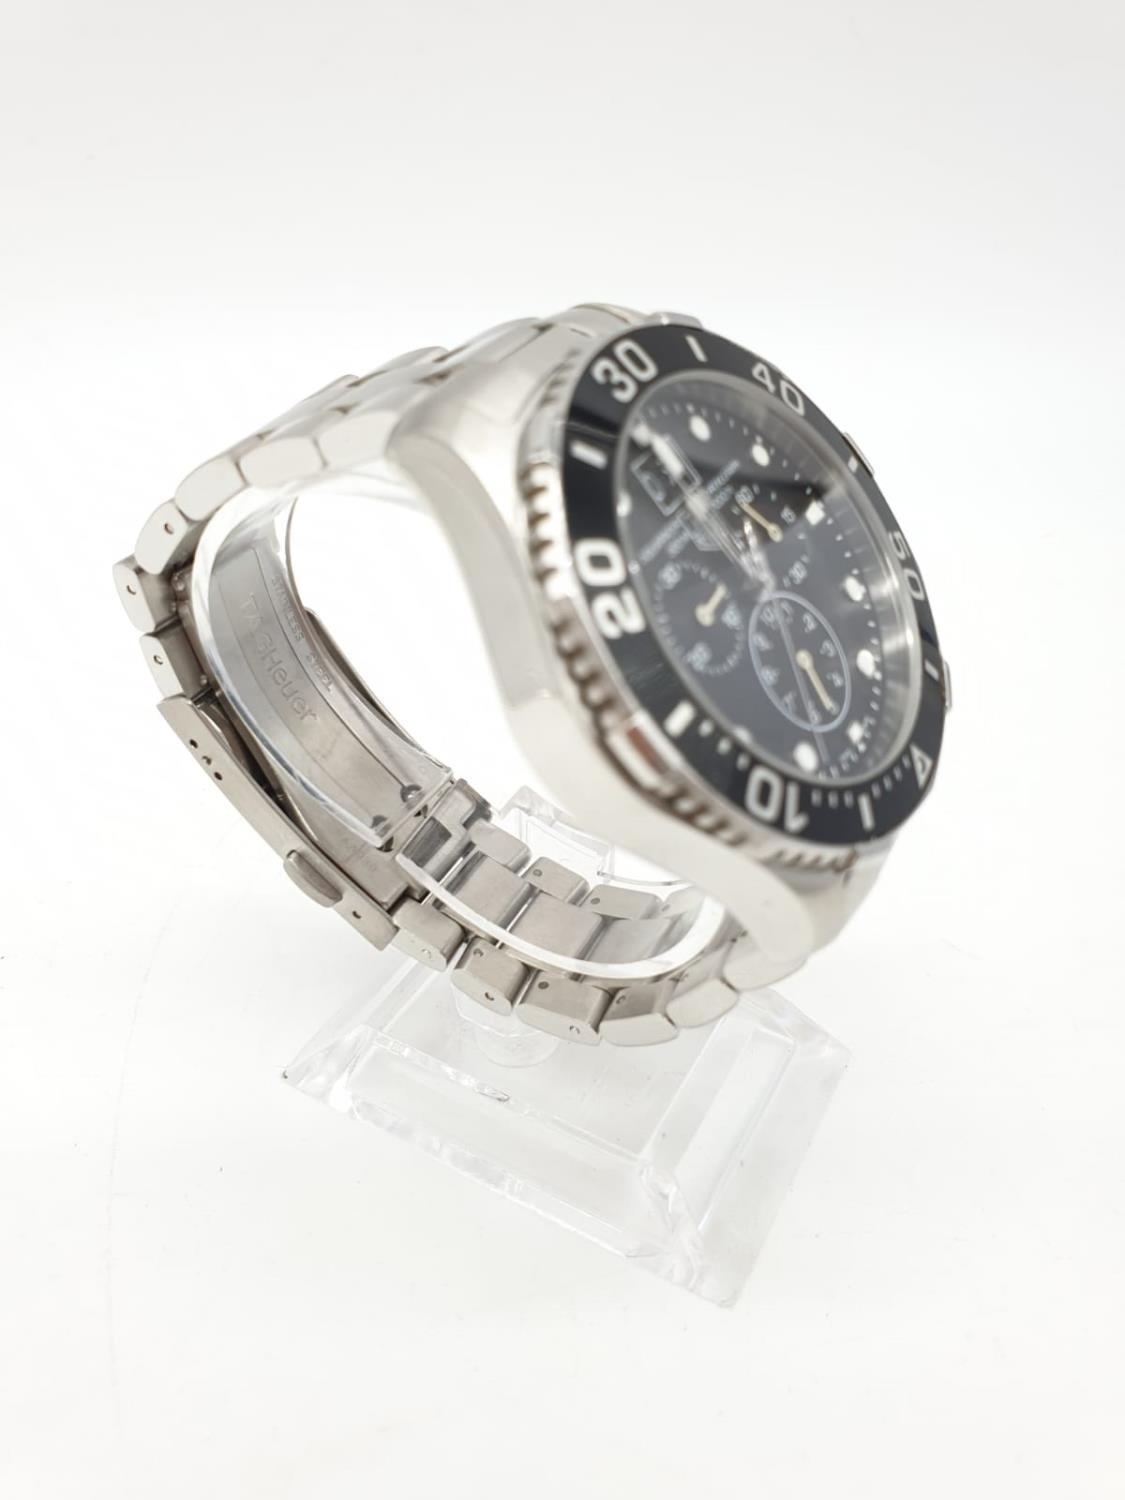 Tag Heuer gents chronograph Aquaracer watch, black face twisted bezel and steel strap, 44mm case - Image 11 of 14